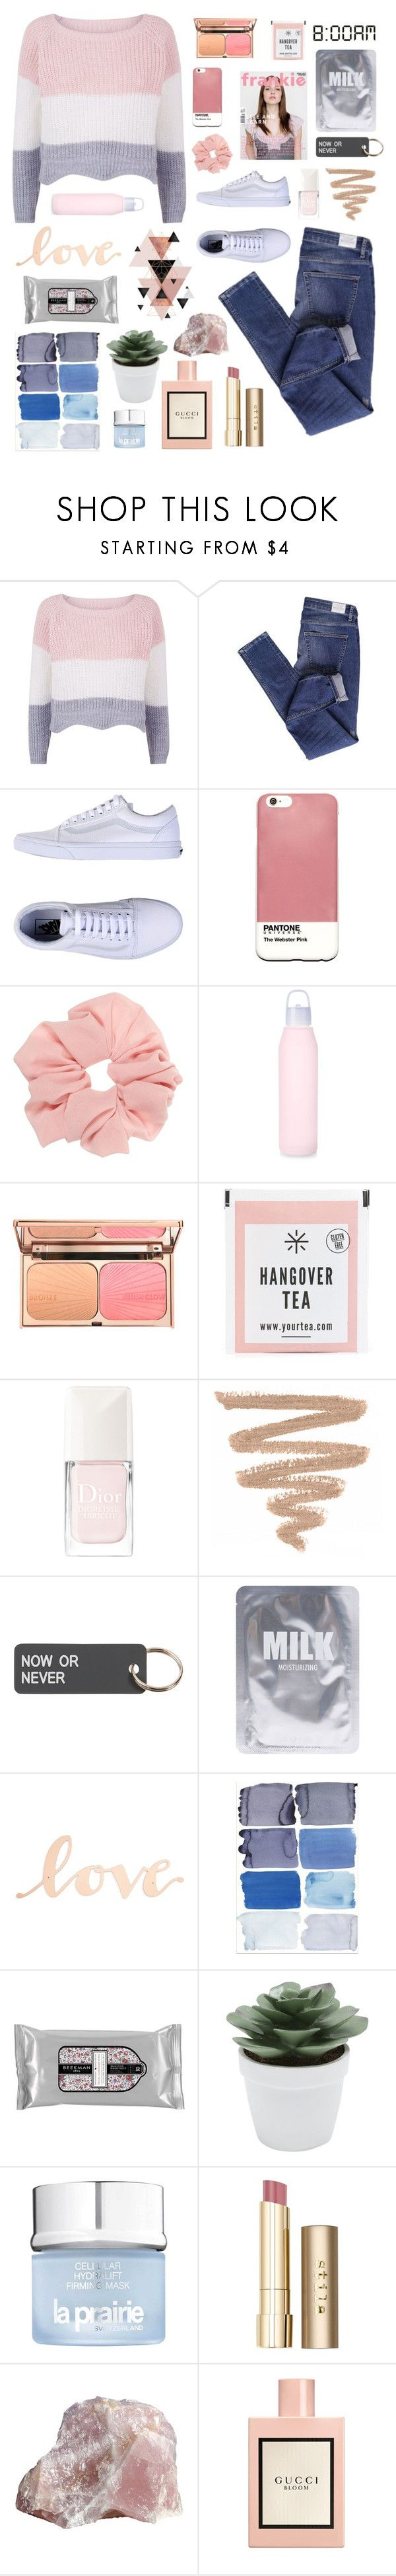 """[12] WRITE OUR STORIES"" by omgitslizzy ❤ liked on Polyvore featuring Cheap Monday, Vans, Case Scenario, lululemon, Christian Dior, Various Projects, Lapcos, Primitives By Kathy, Beekman 1802 and M&Co"